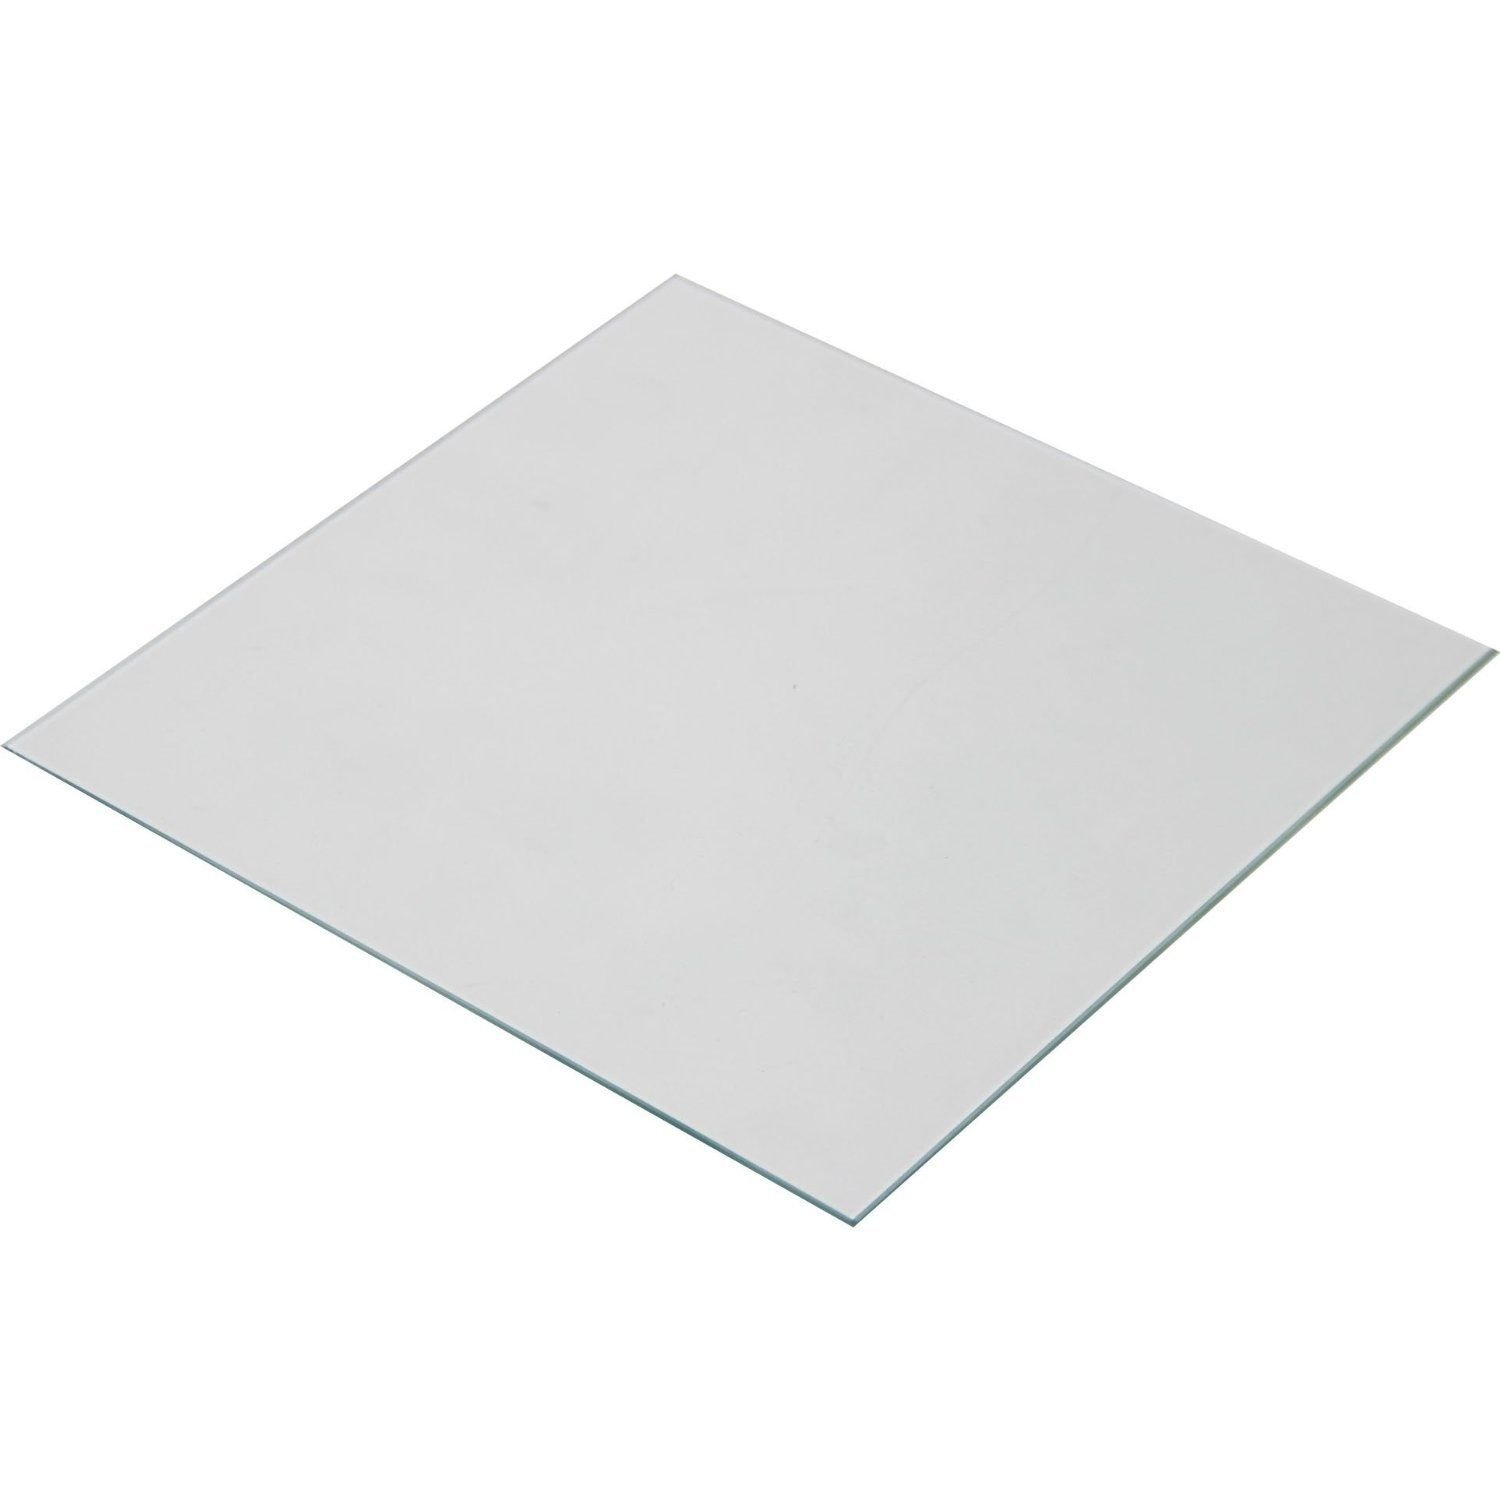 Signswise Borosilicate Glass Heat Bed 140mm x 140mm x 3mm 3D Printer Platform Heated Bed